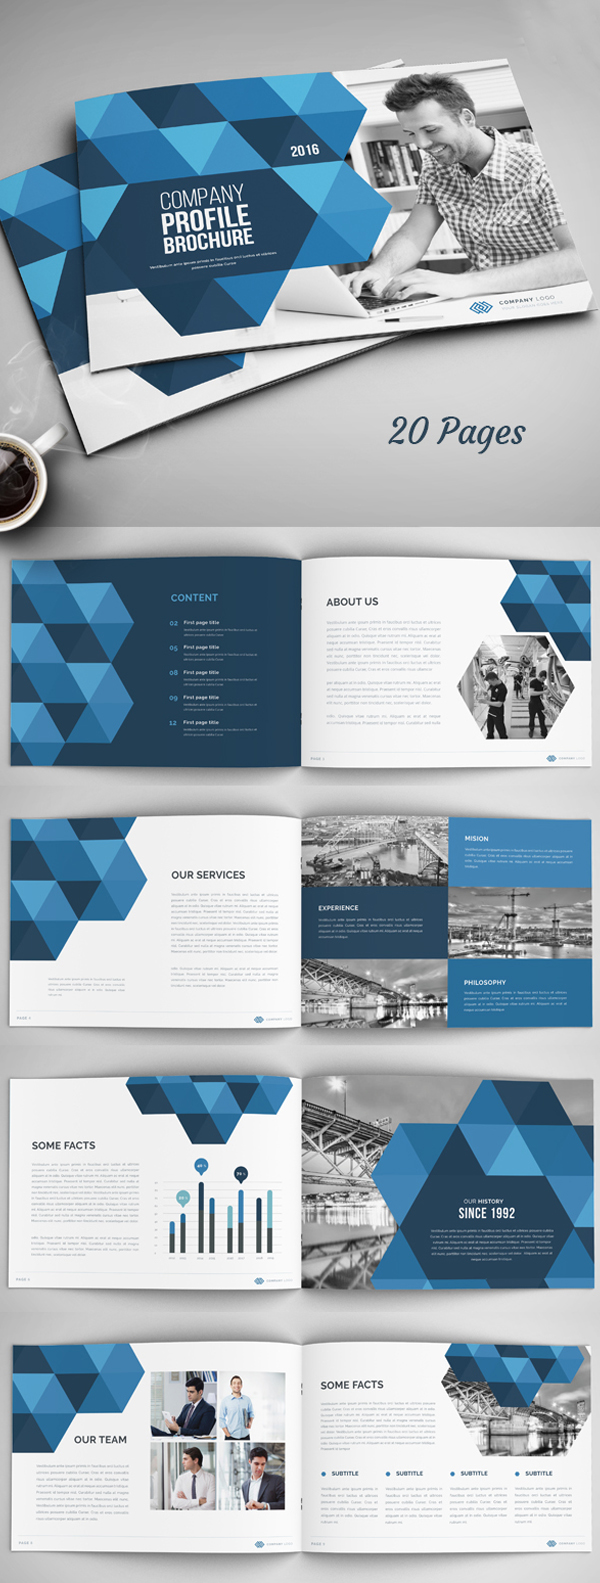 company brochure design templates new catalog brochure design templates design graphic